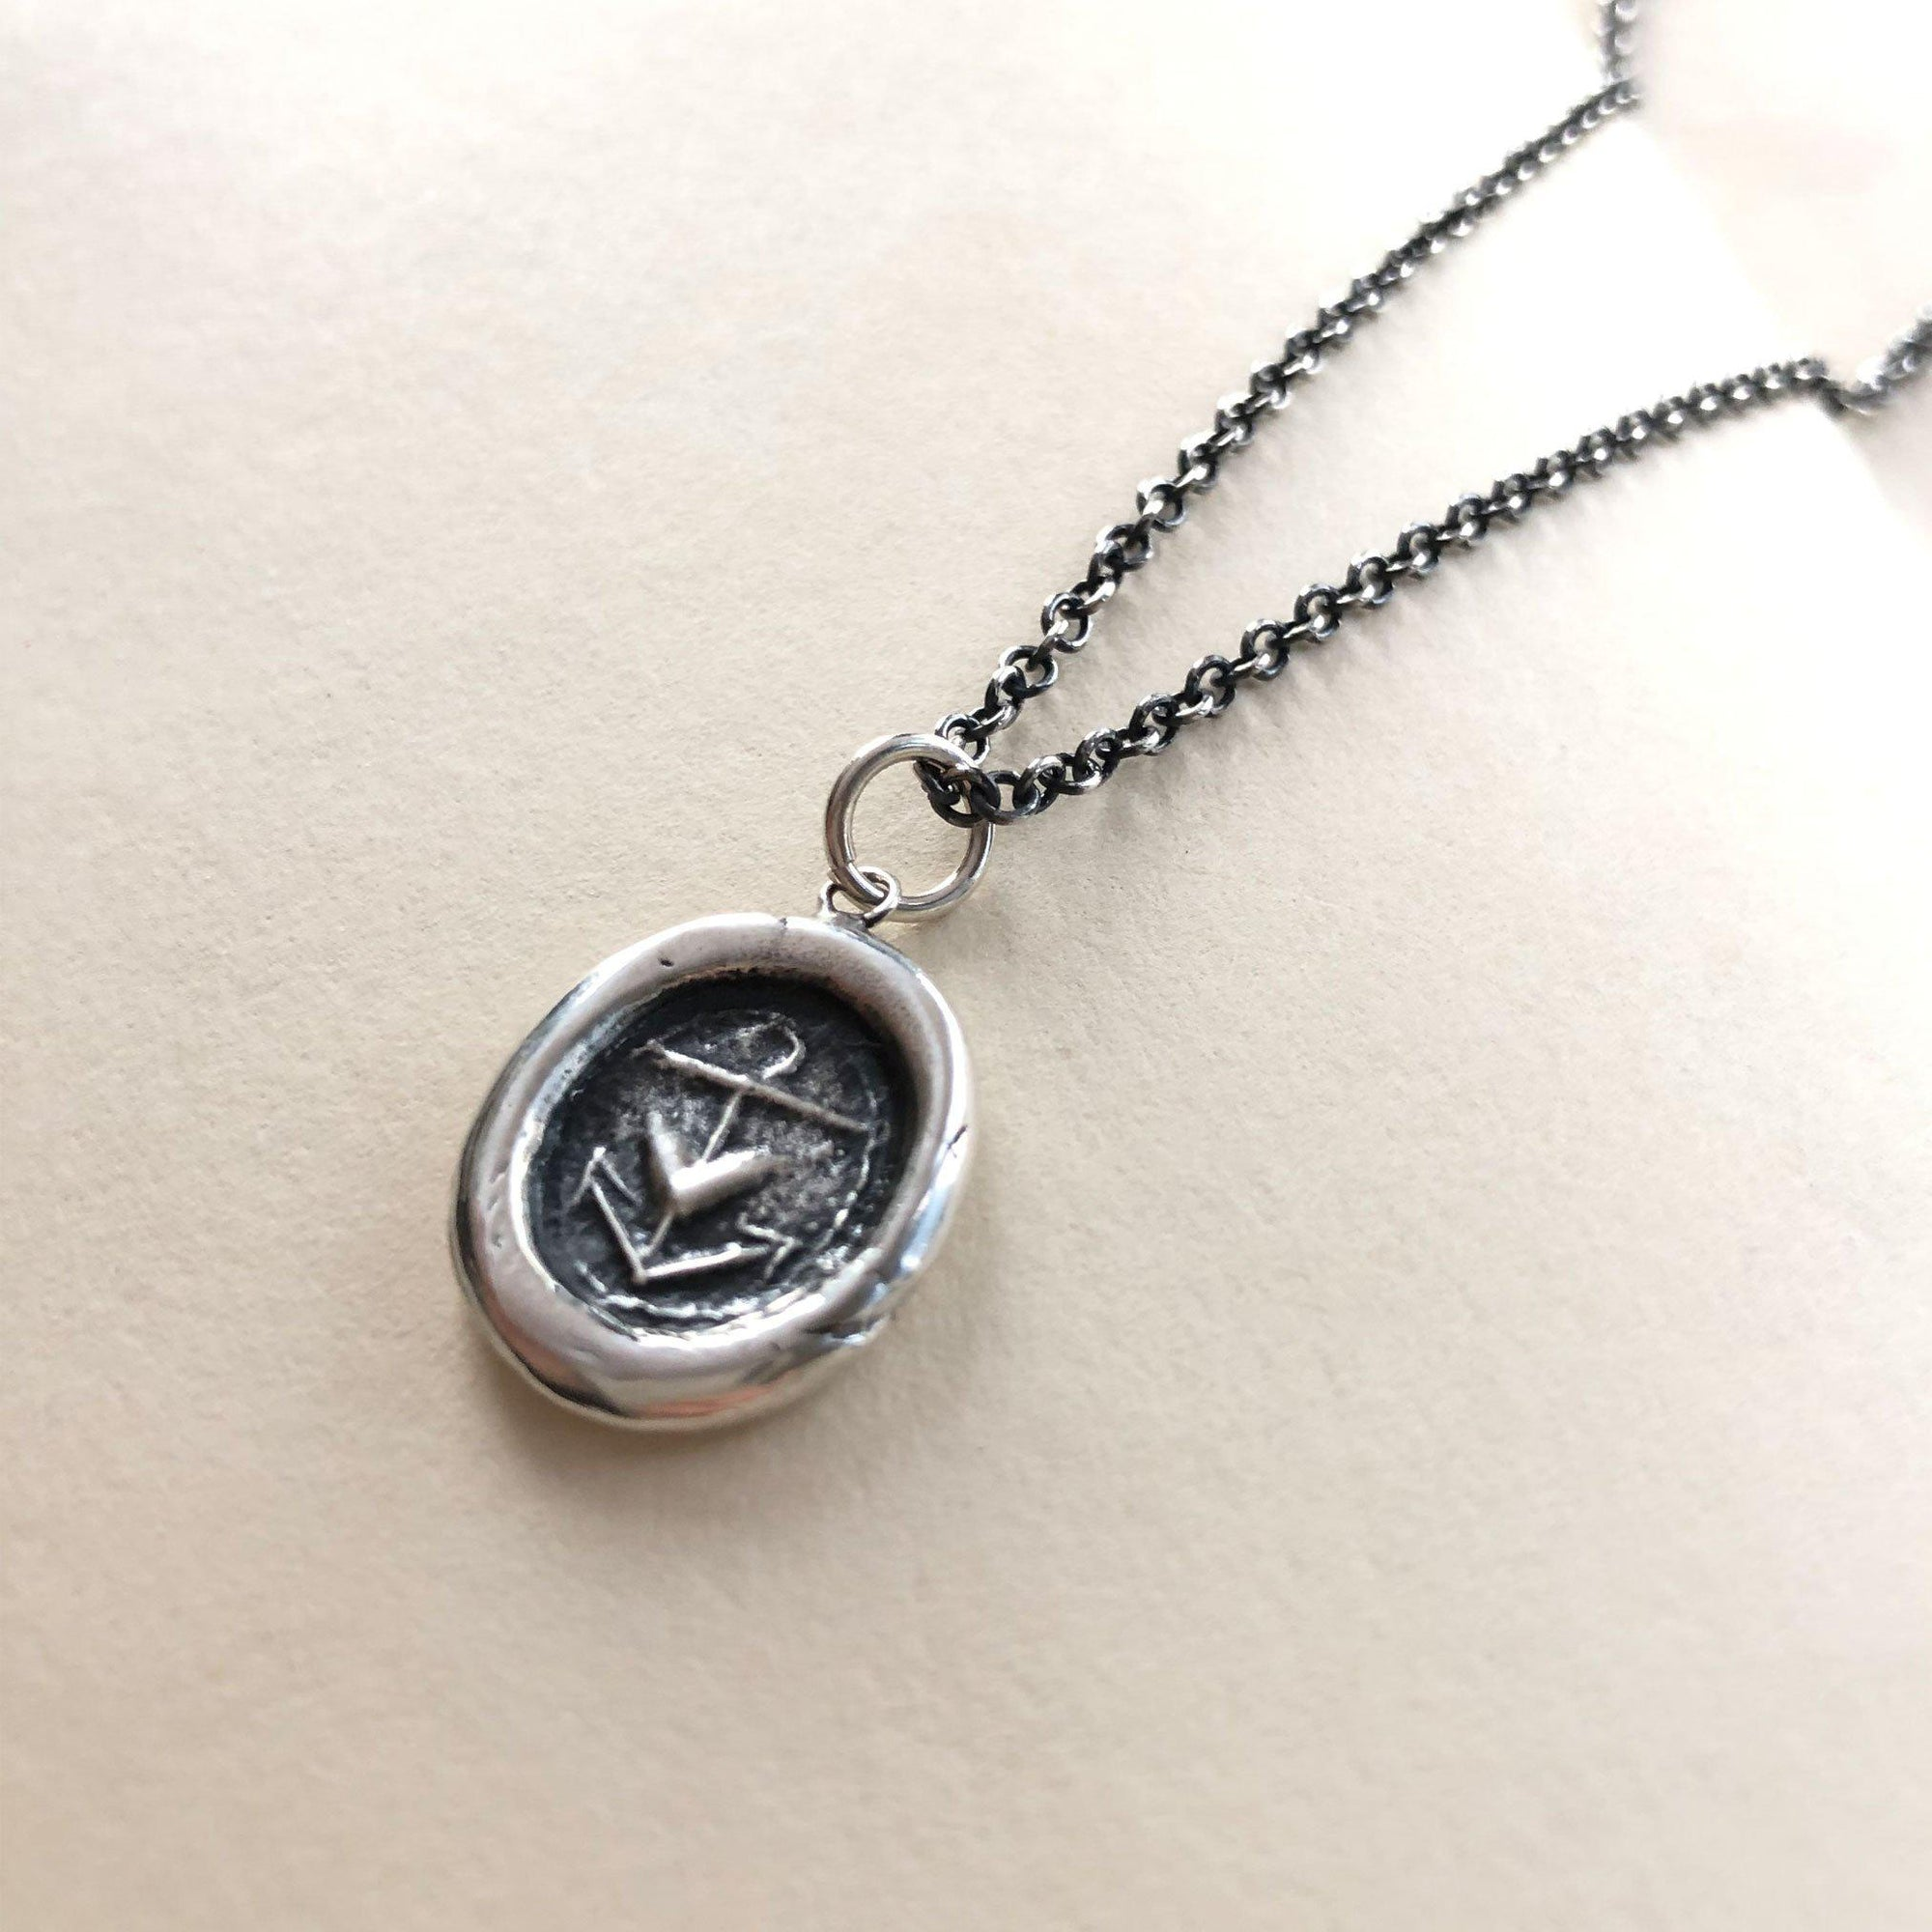 Anchor & Heart Silver Wax Seal Charm - Hope & Love - circa 1700's found on the banks of the Thames River, London